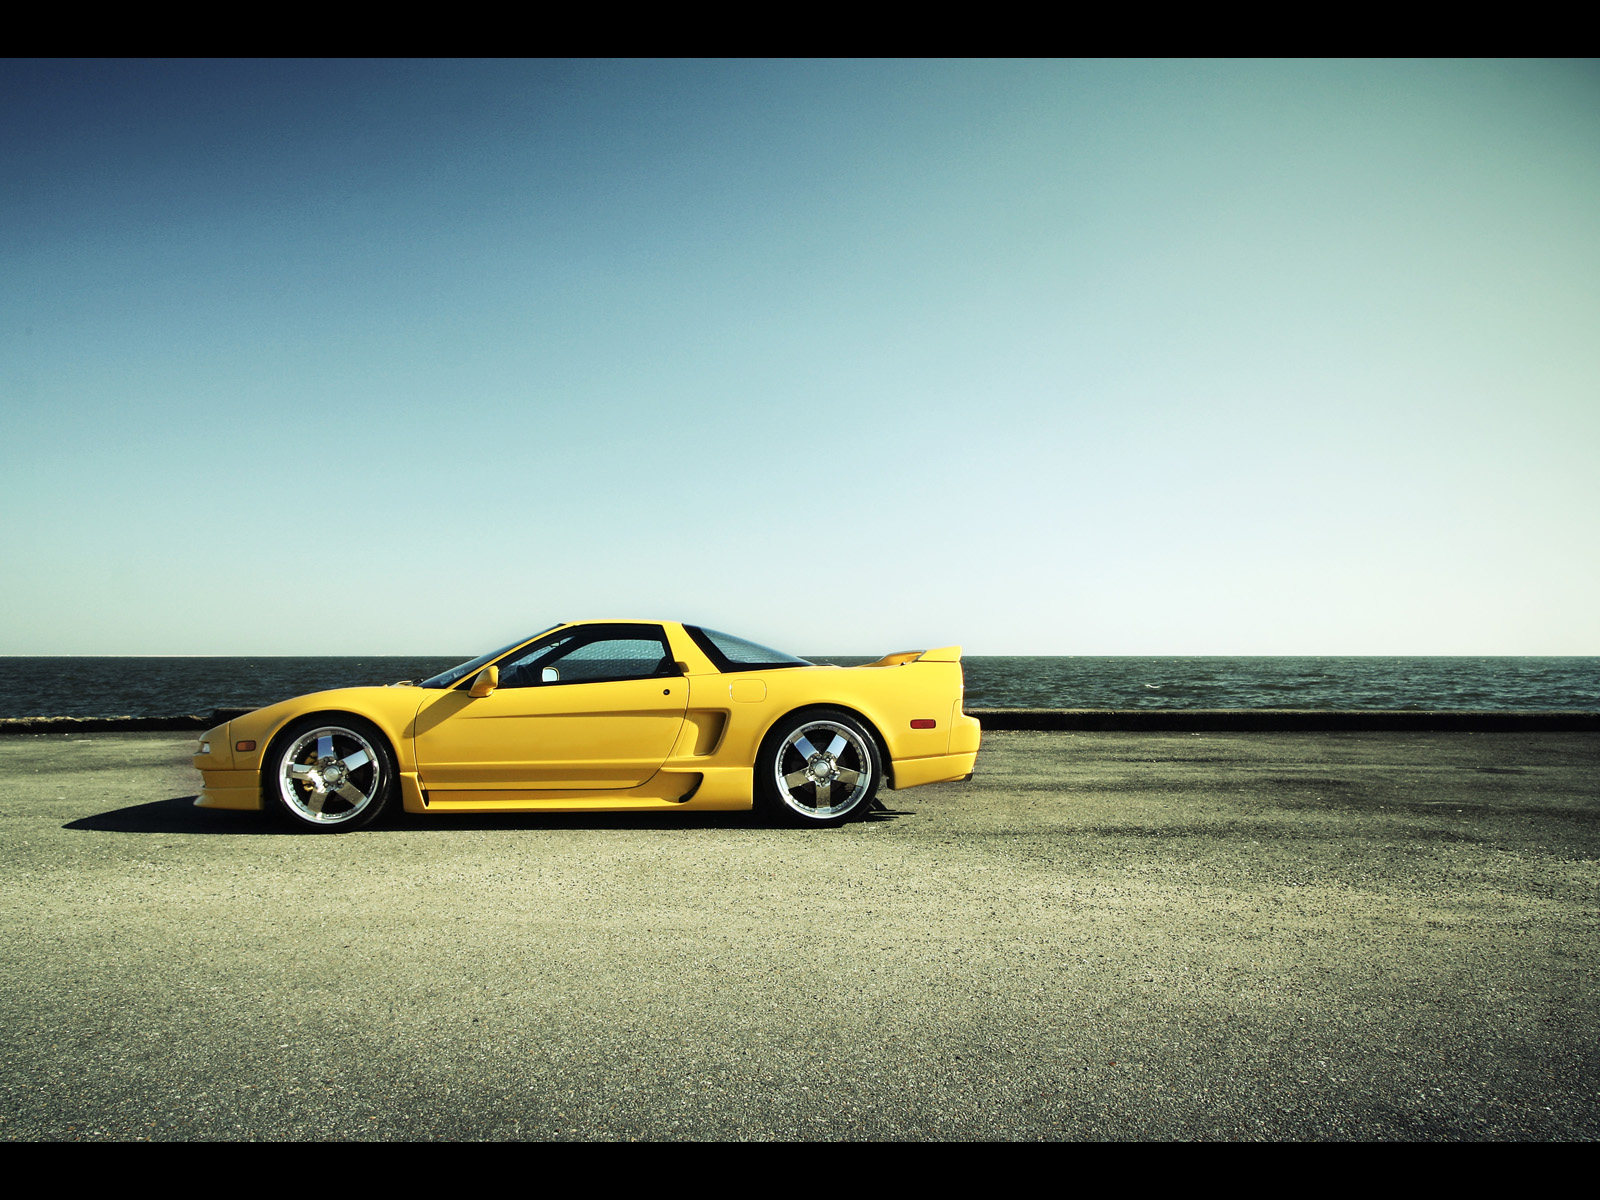 You can use this Acura NSX photo #49623 as wallpaper (poster) for desktop